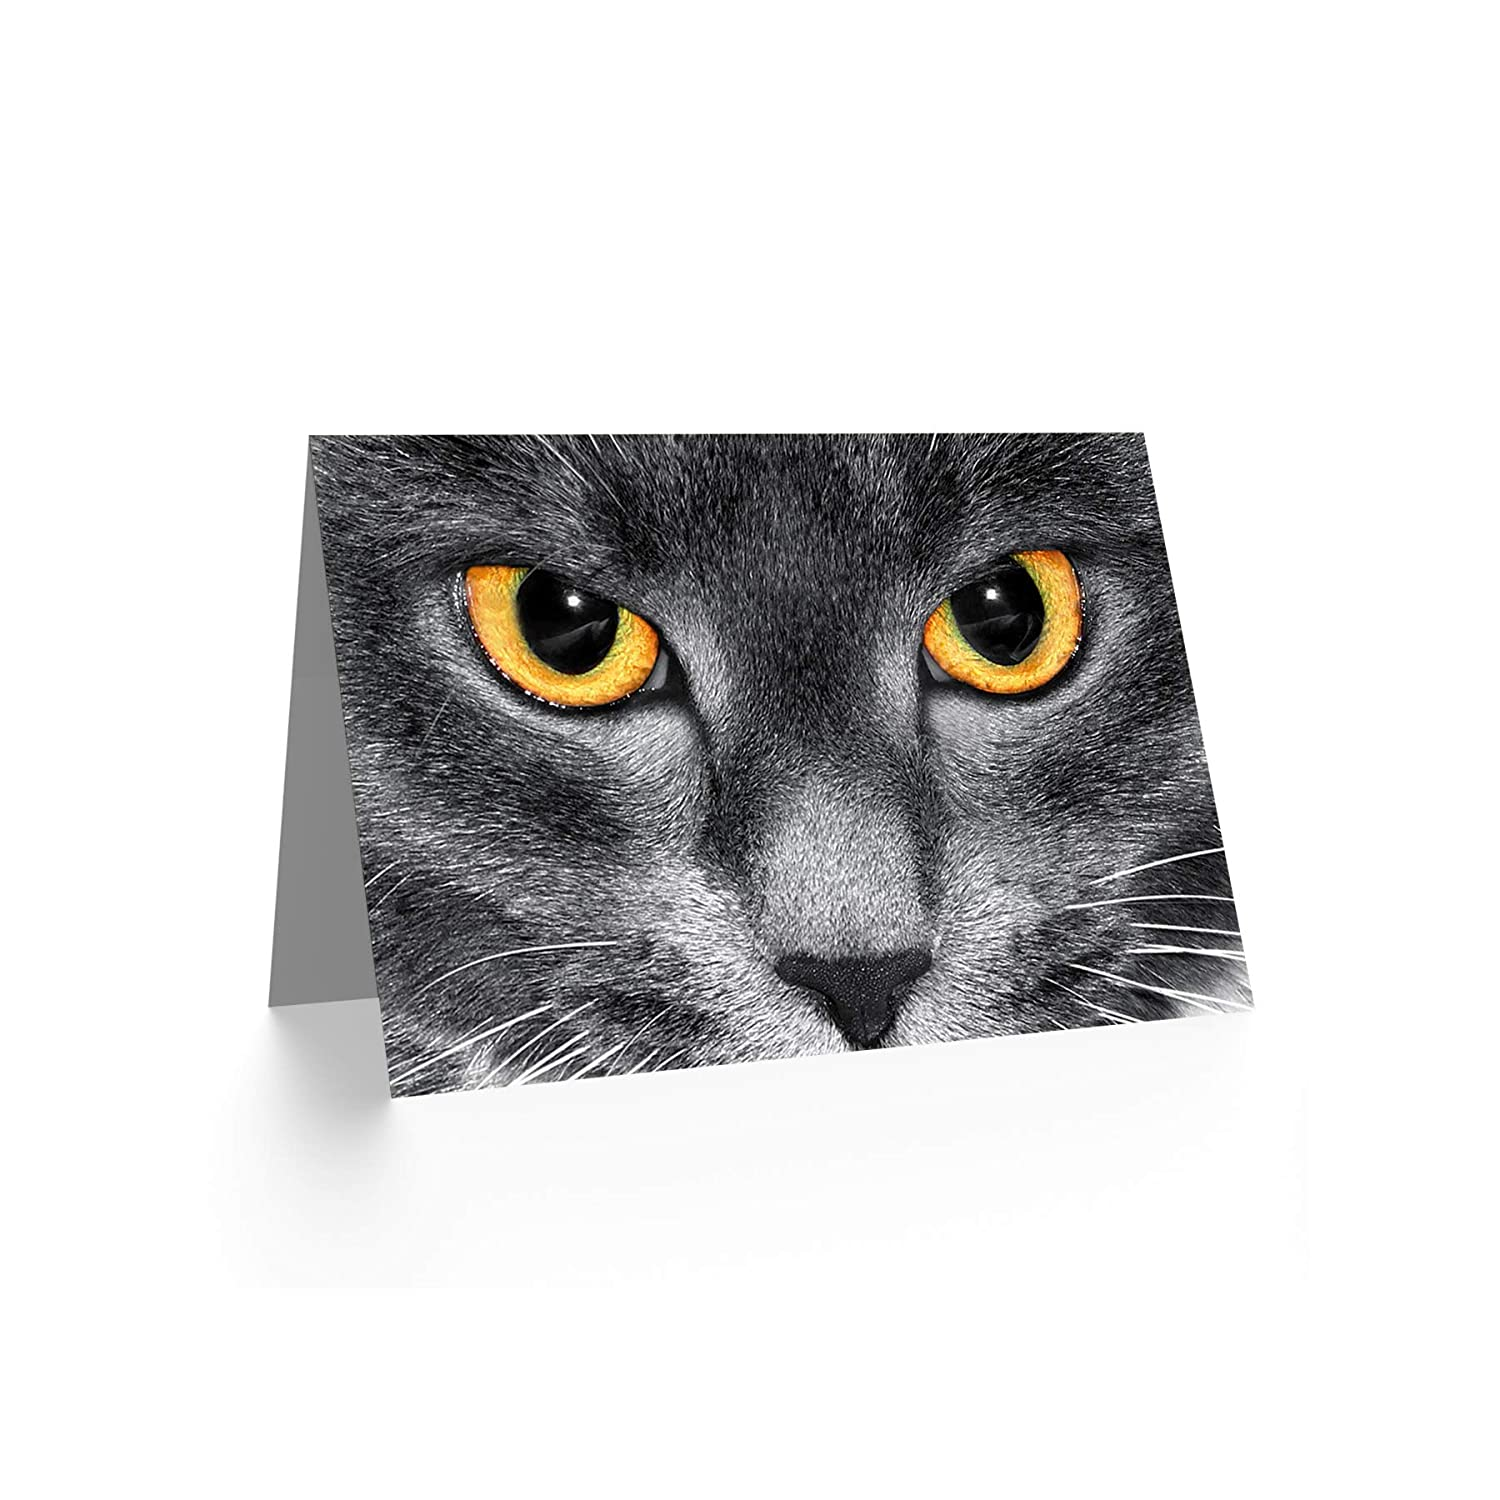 Wee Blue Coo CAT EYES PHOTOGRAPH CLOSE UP BLANK GREETINGS BIRTHDAY CARD ART